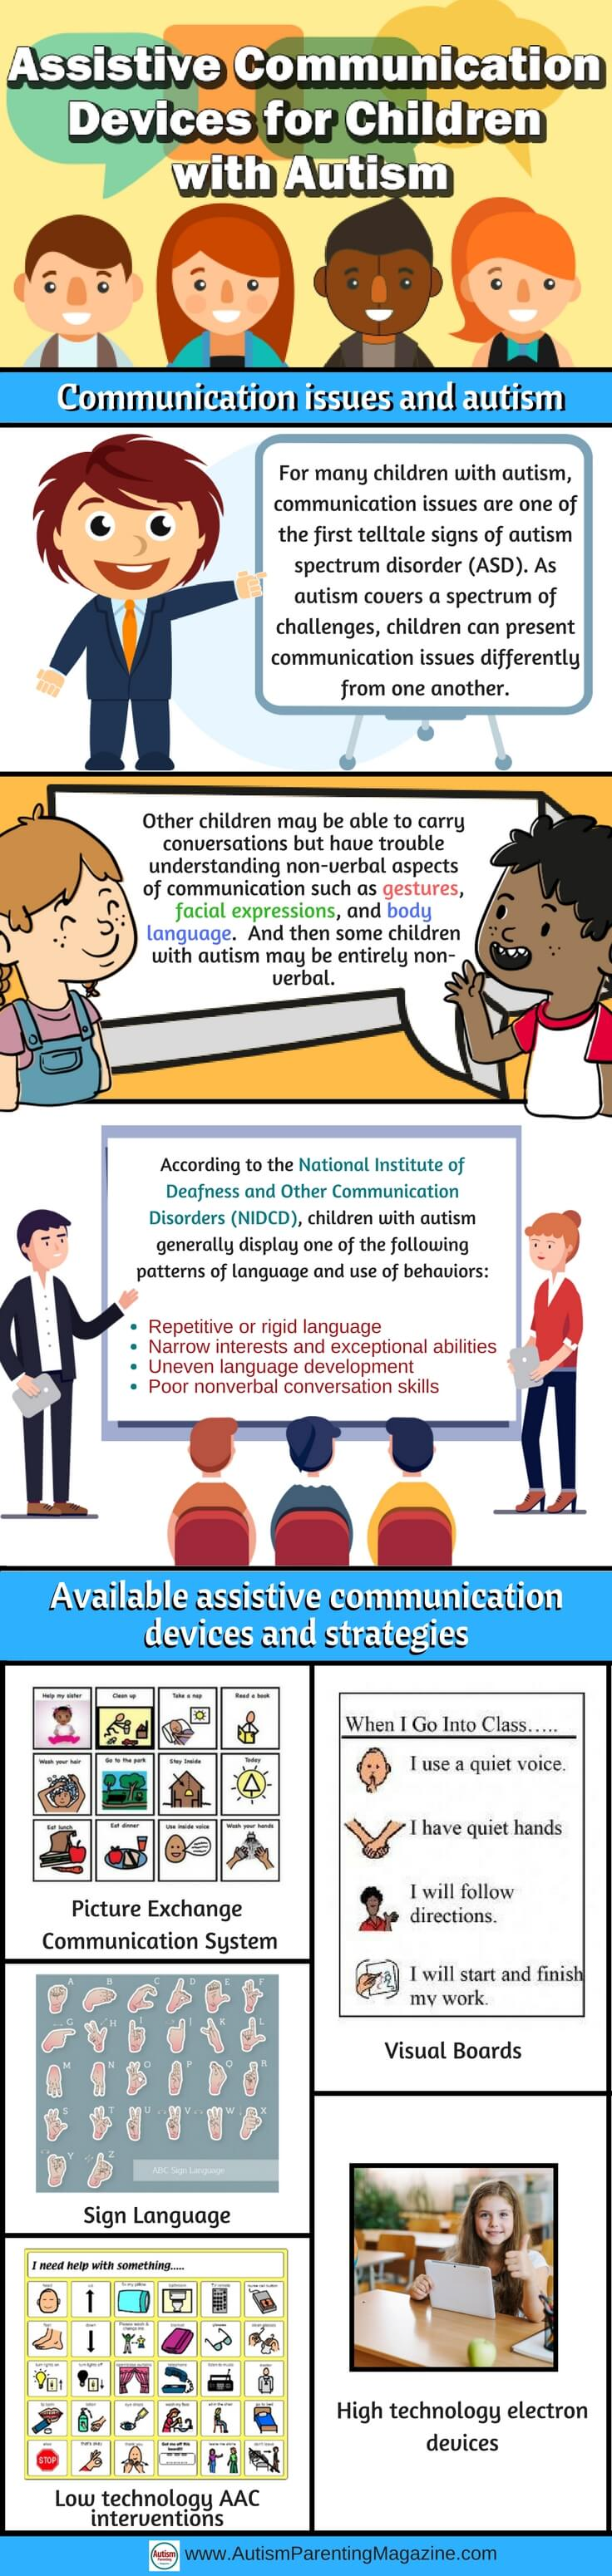 Assistive-Communication-Devices-for-Children-with-Autism-infographic-plaza